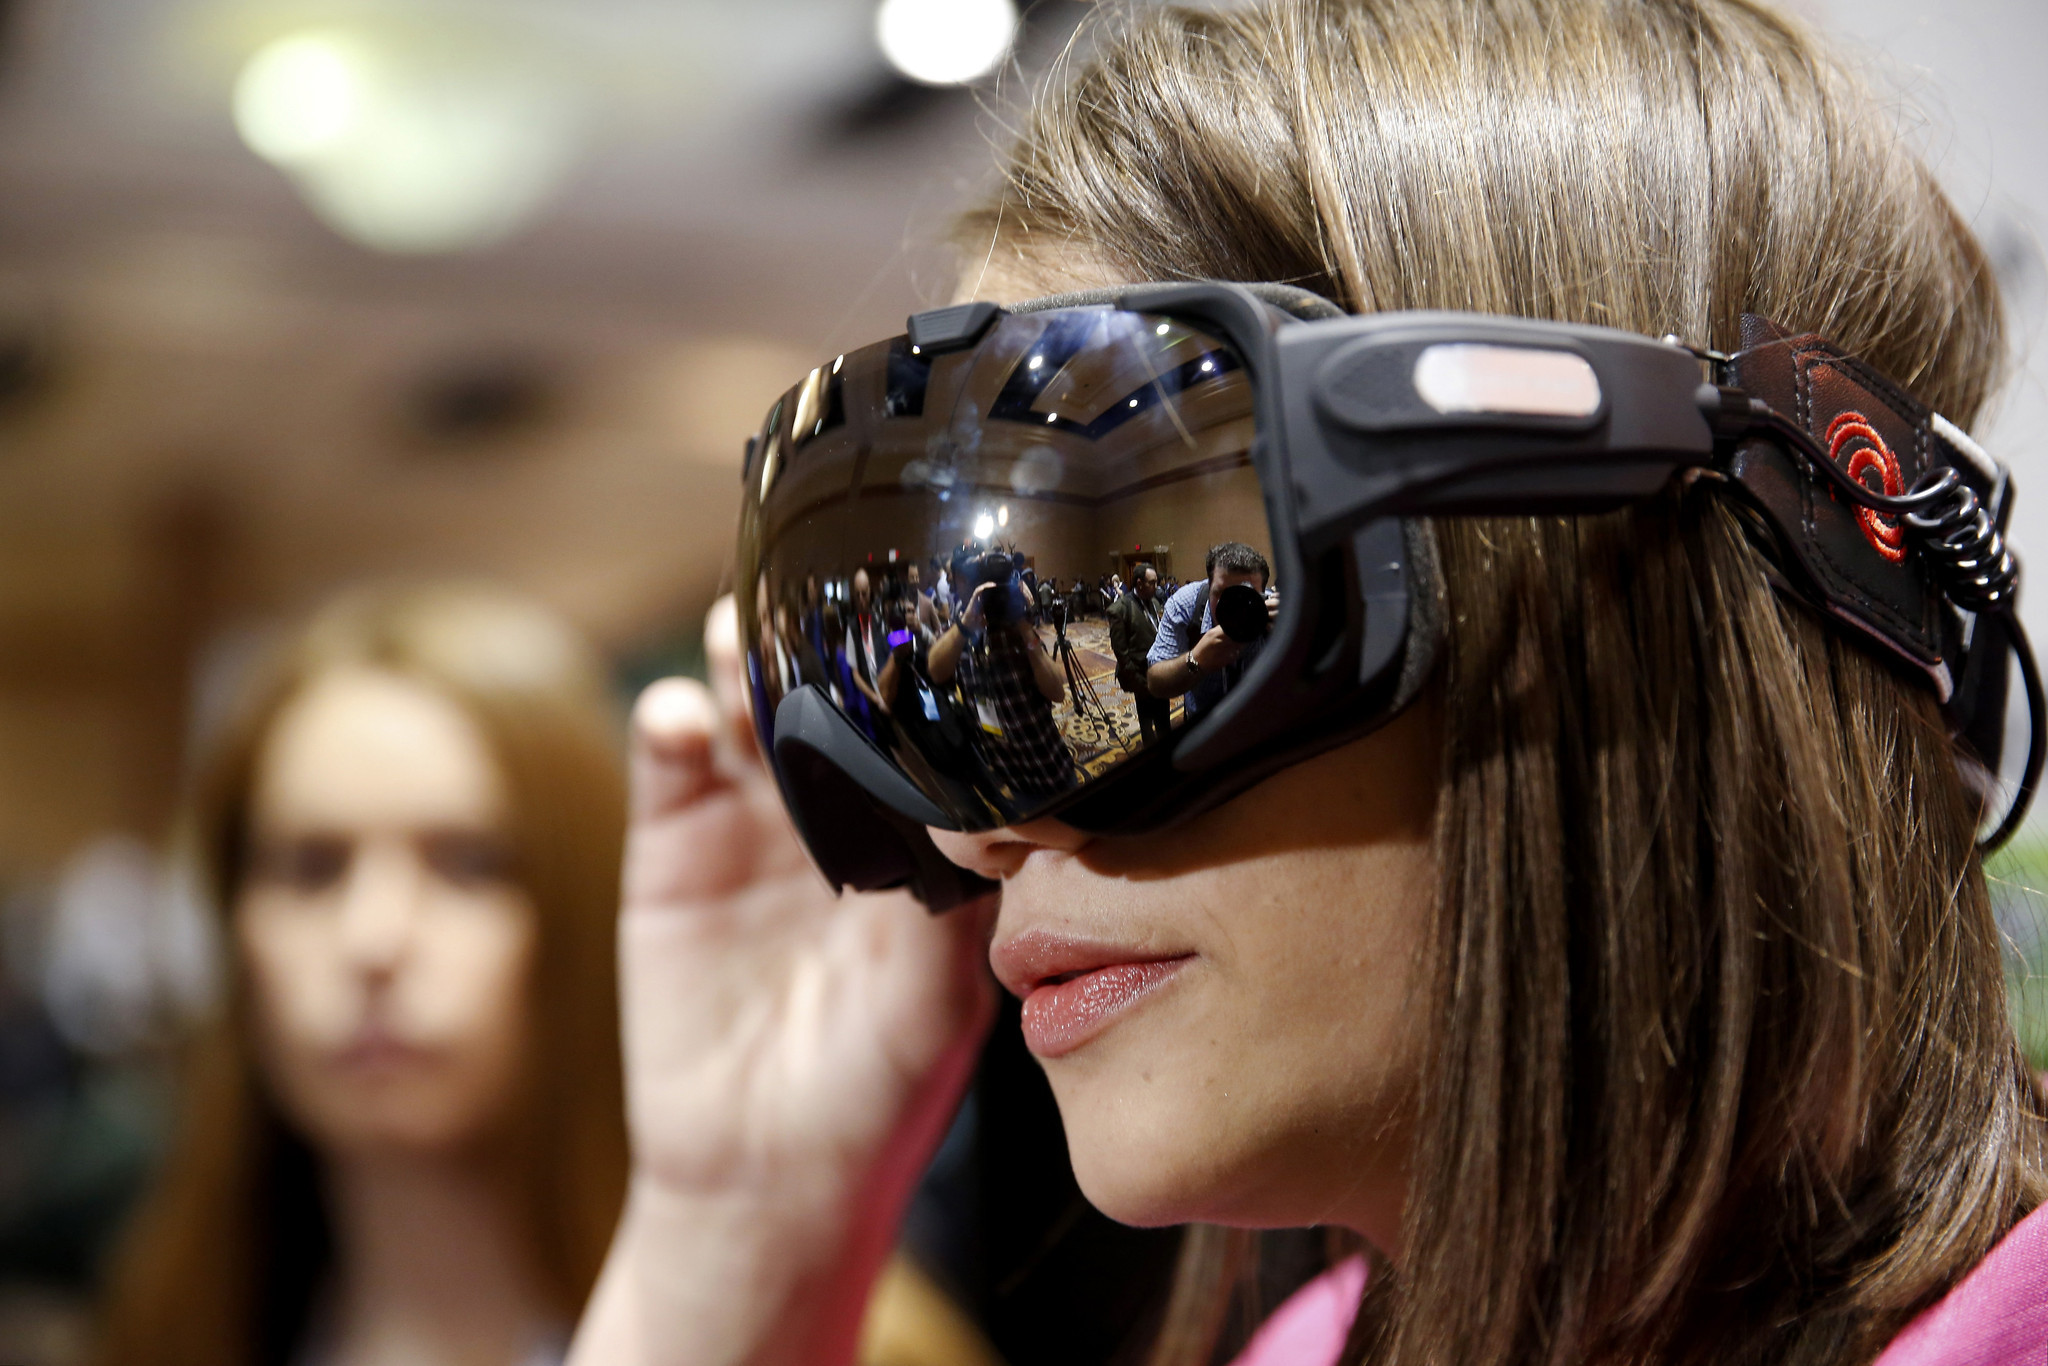 The Best Tech Of CES 2014